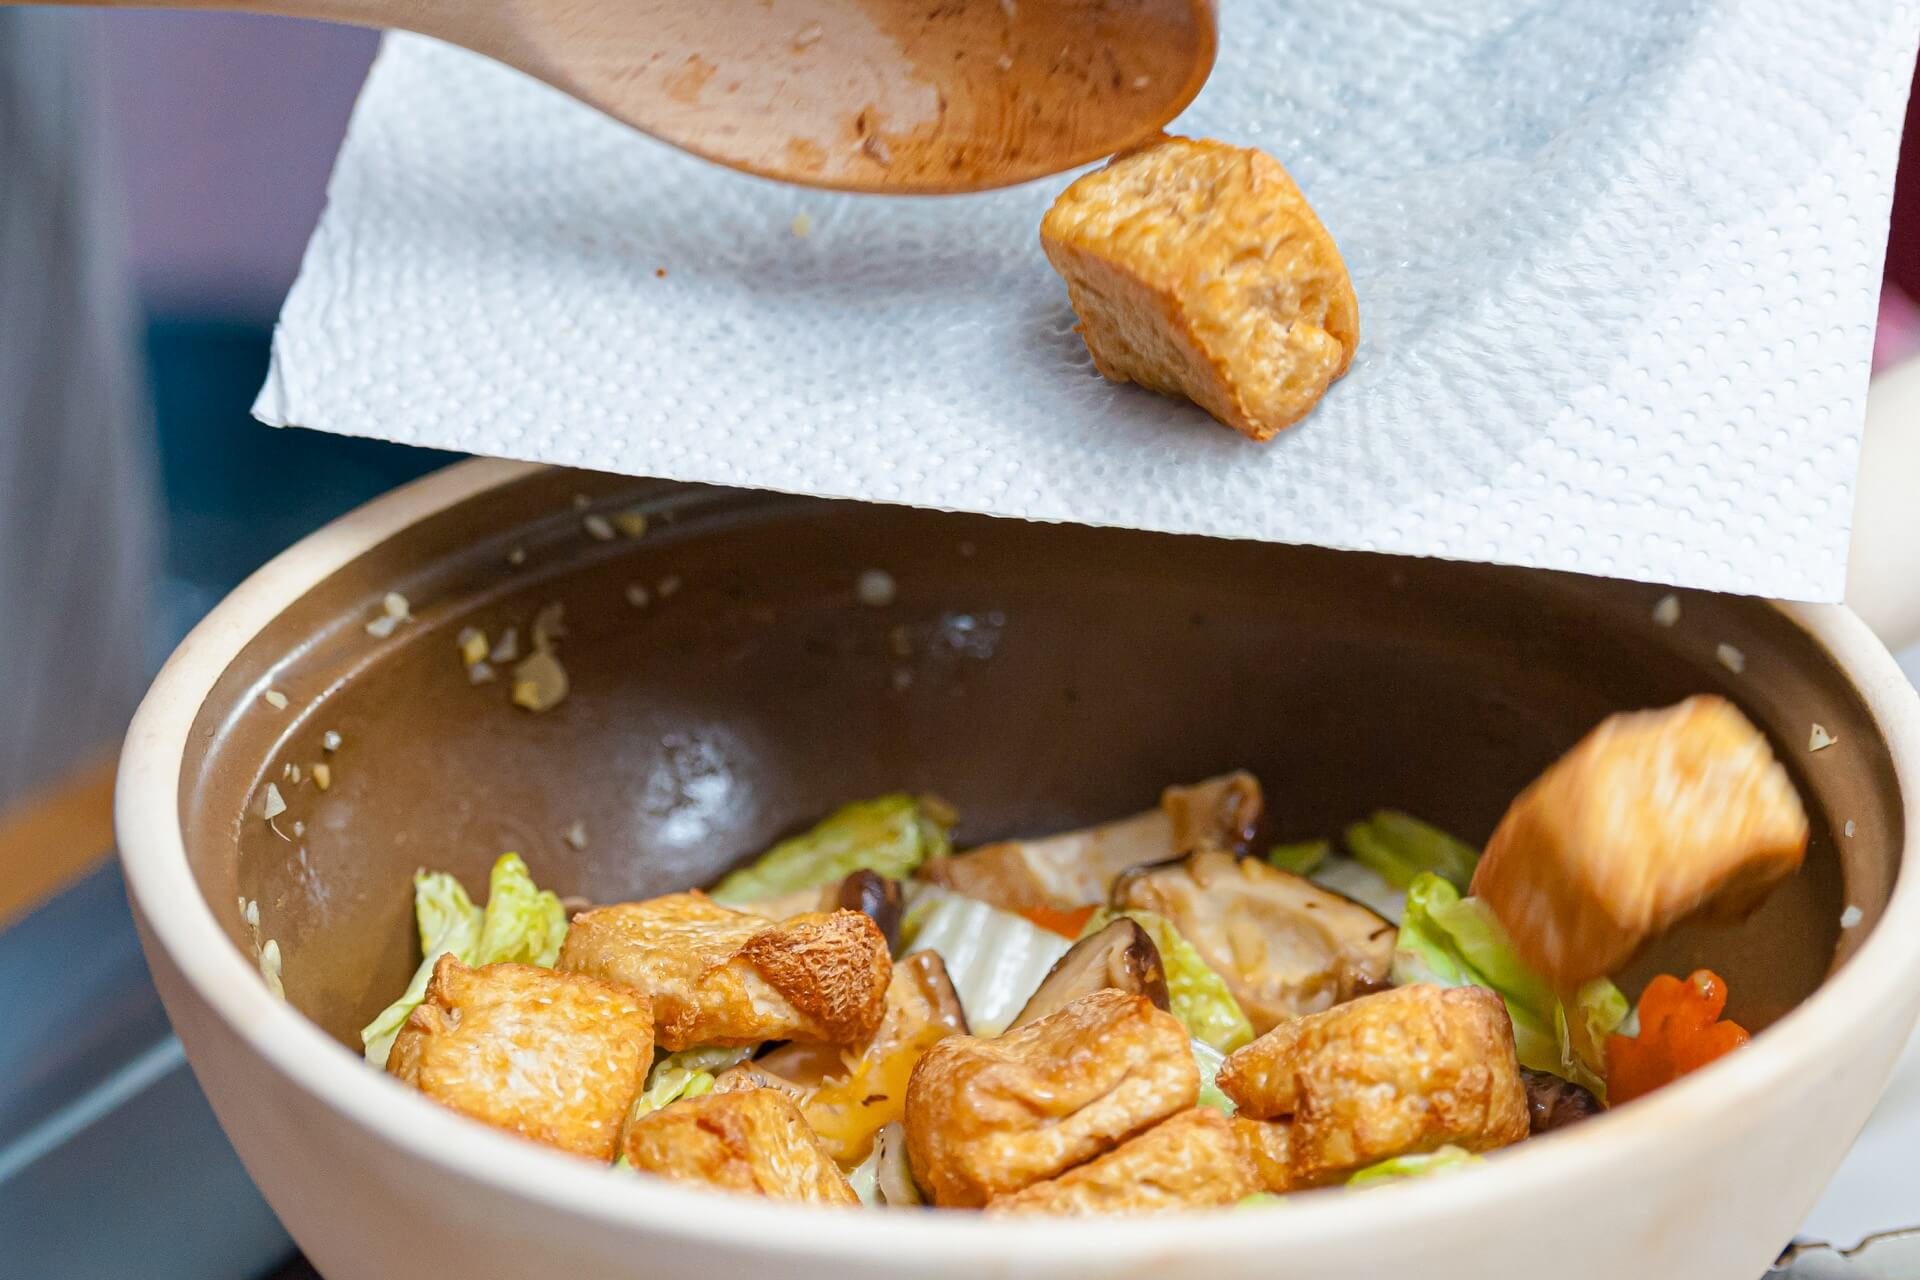 Cook the tofu and water chestnuts